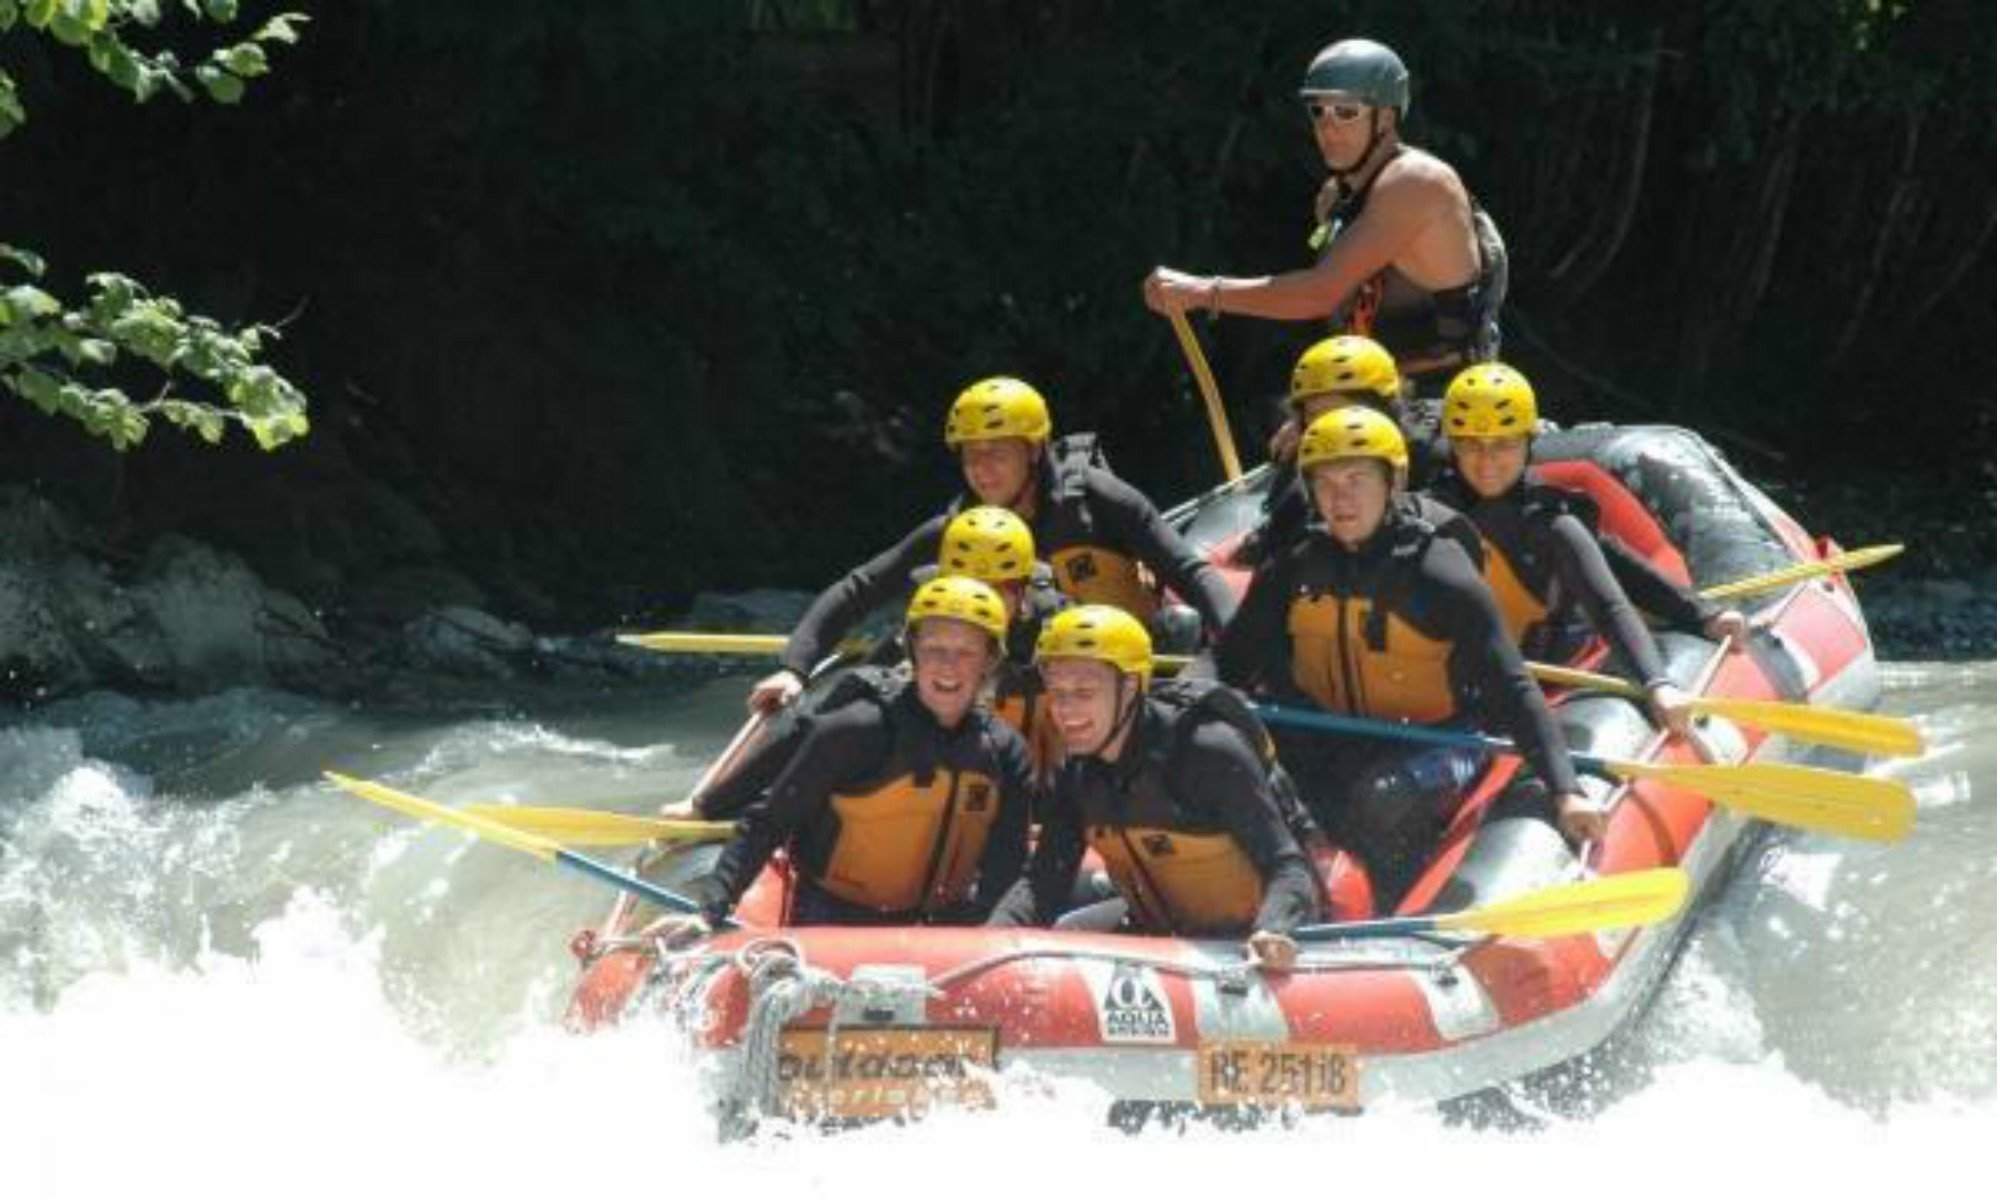 A group of people on a white water rafting tour on the Simme River in the town of Interlaken.